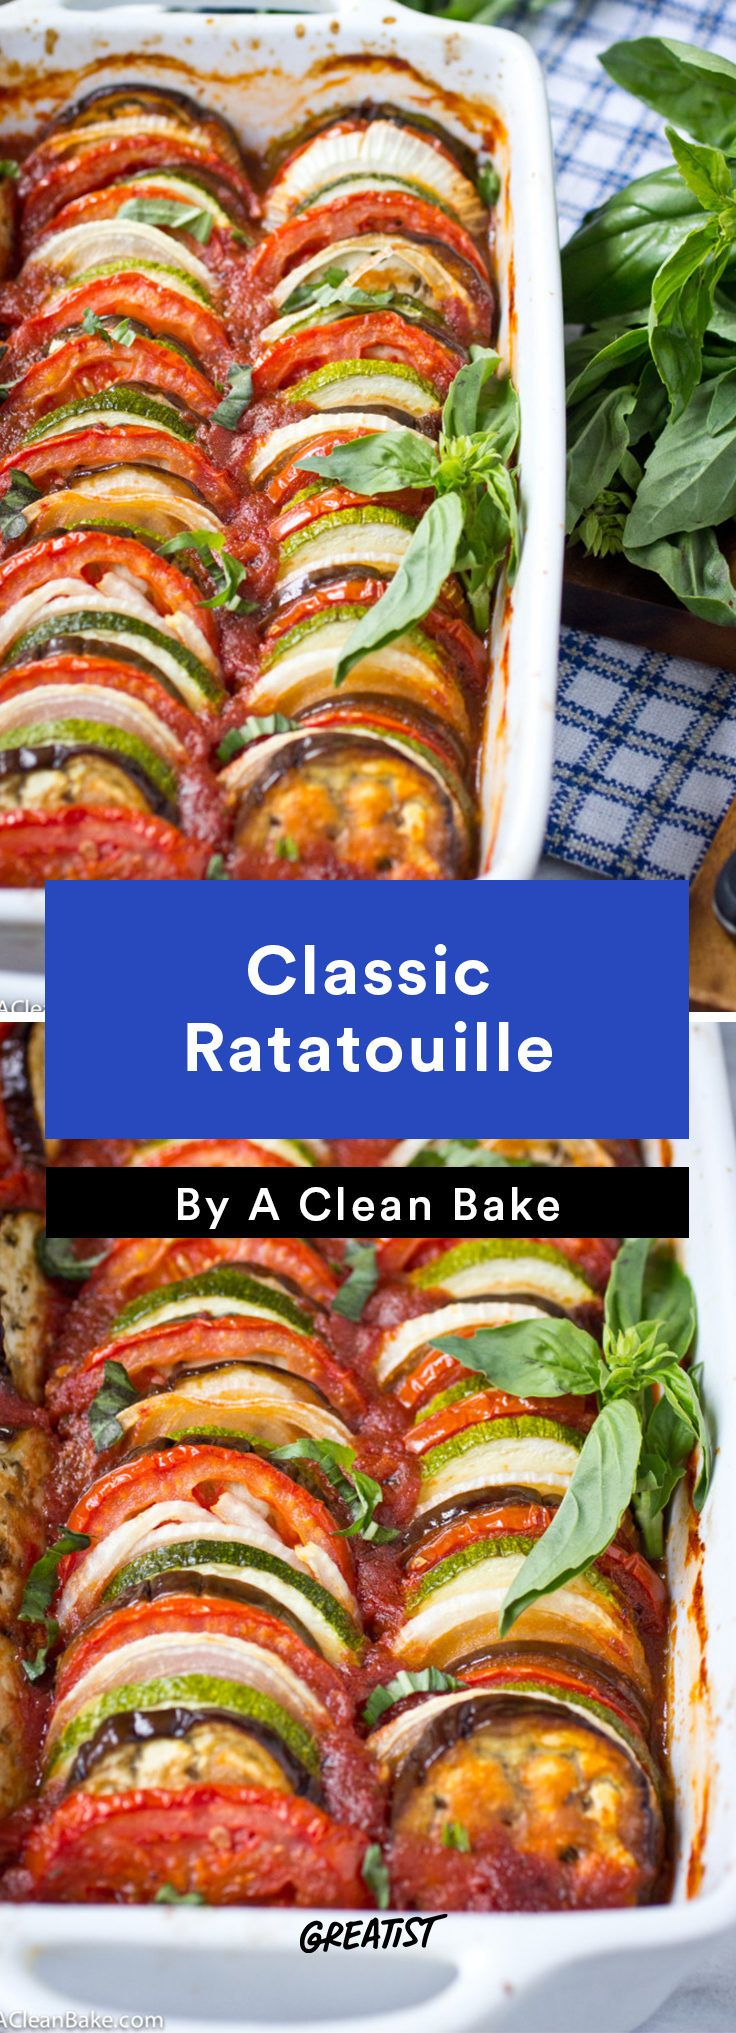 1. Classic Ratatouille  #Greatist http://greatist.com/eat/ratatouille-recipes-to-eat-all-week